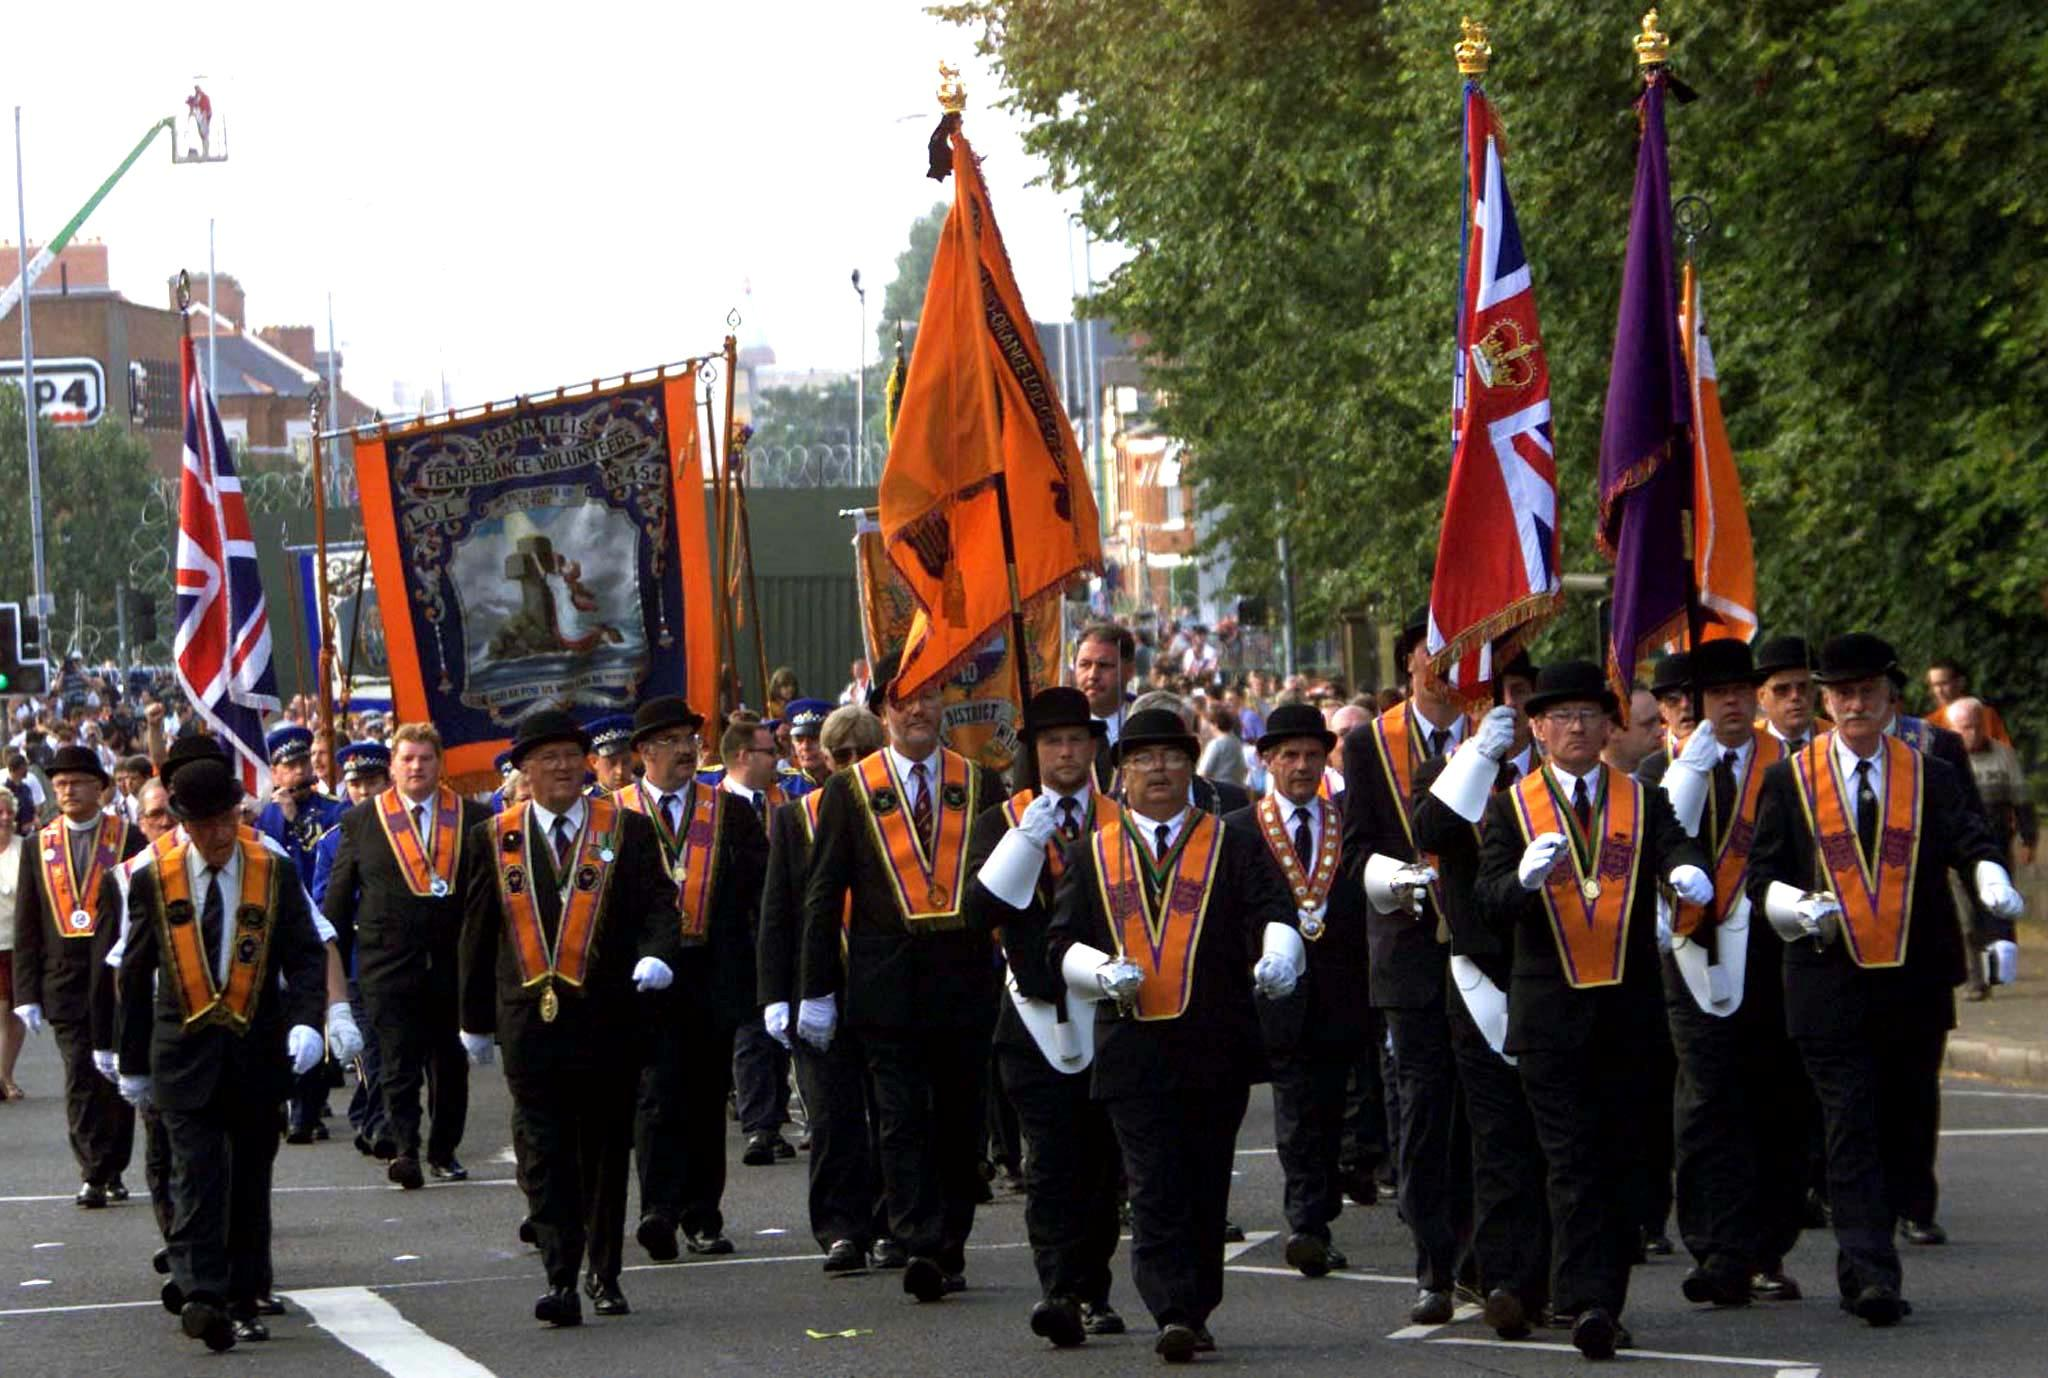 Exclusive: Ireland's Orange Order discourages protests over Brexit...